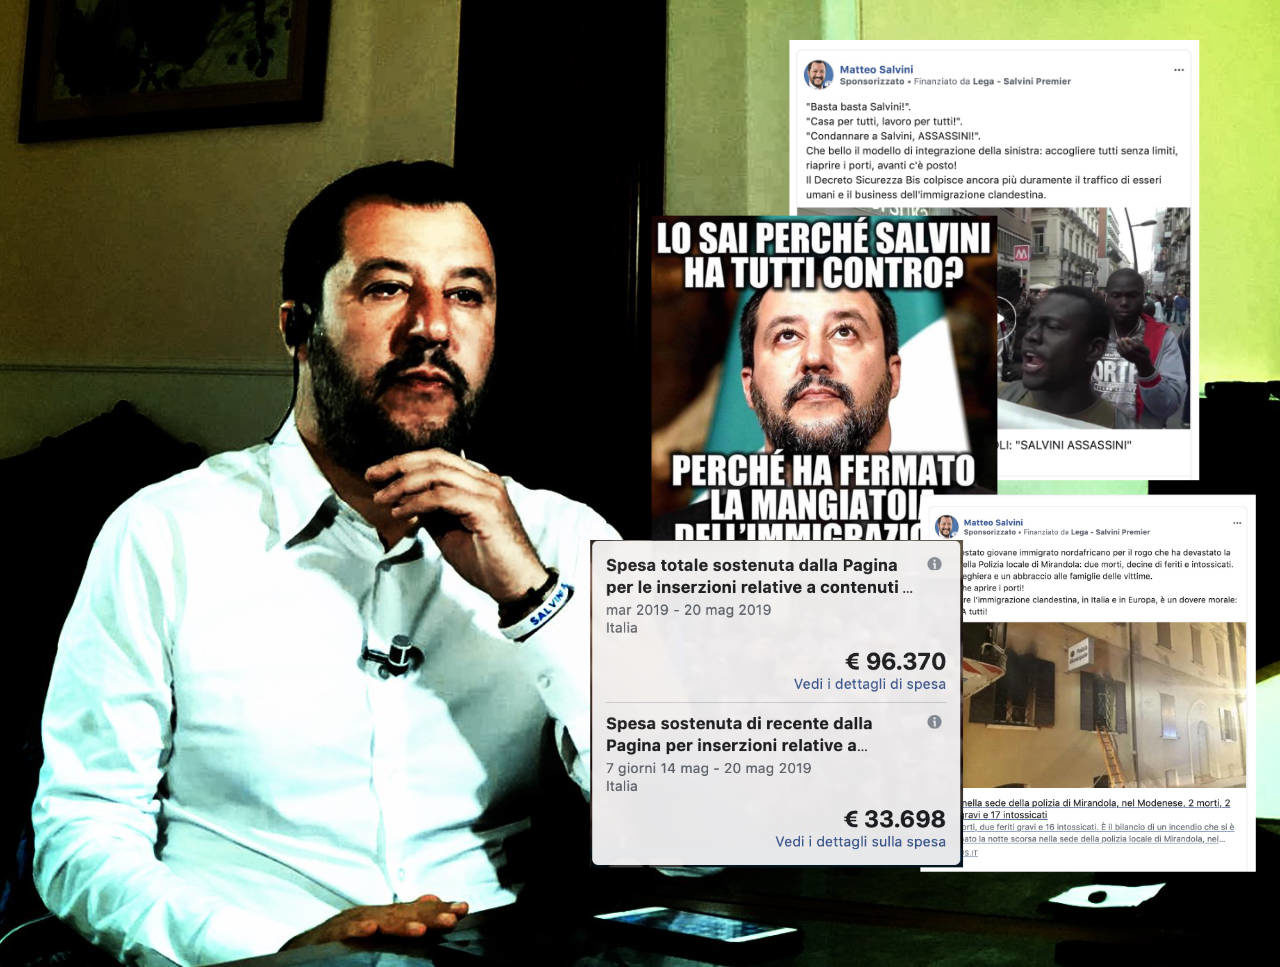 https://thesubmarine.it/wp-content/uploads/2019/05/cover-post-salvini-1280x967.jpg